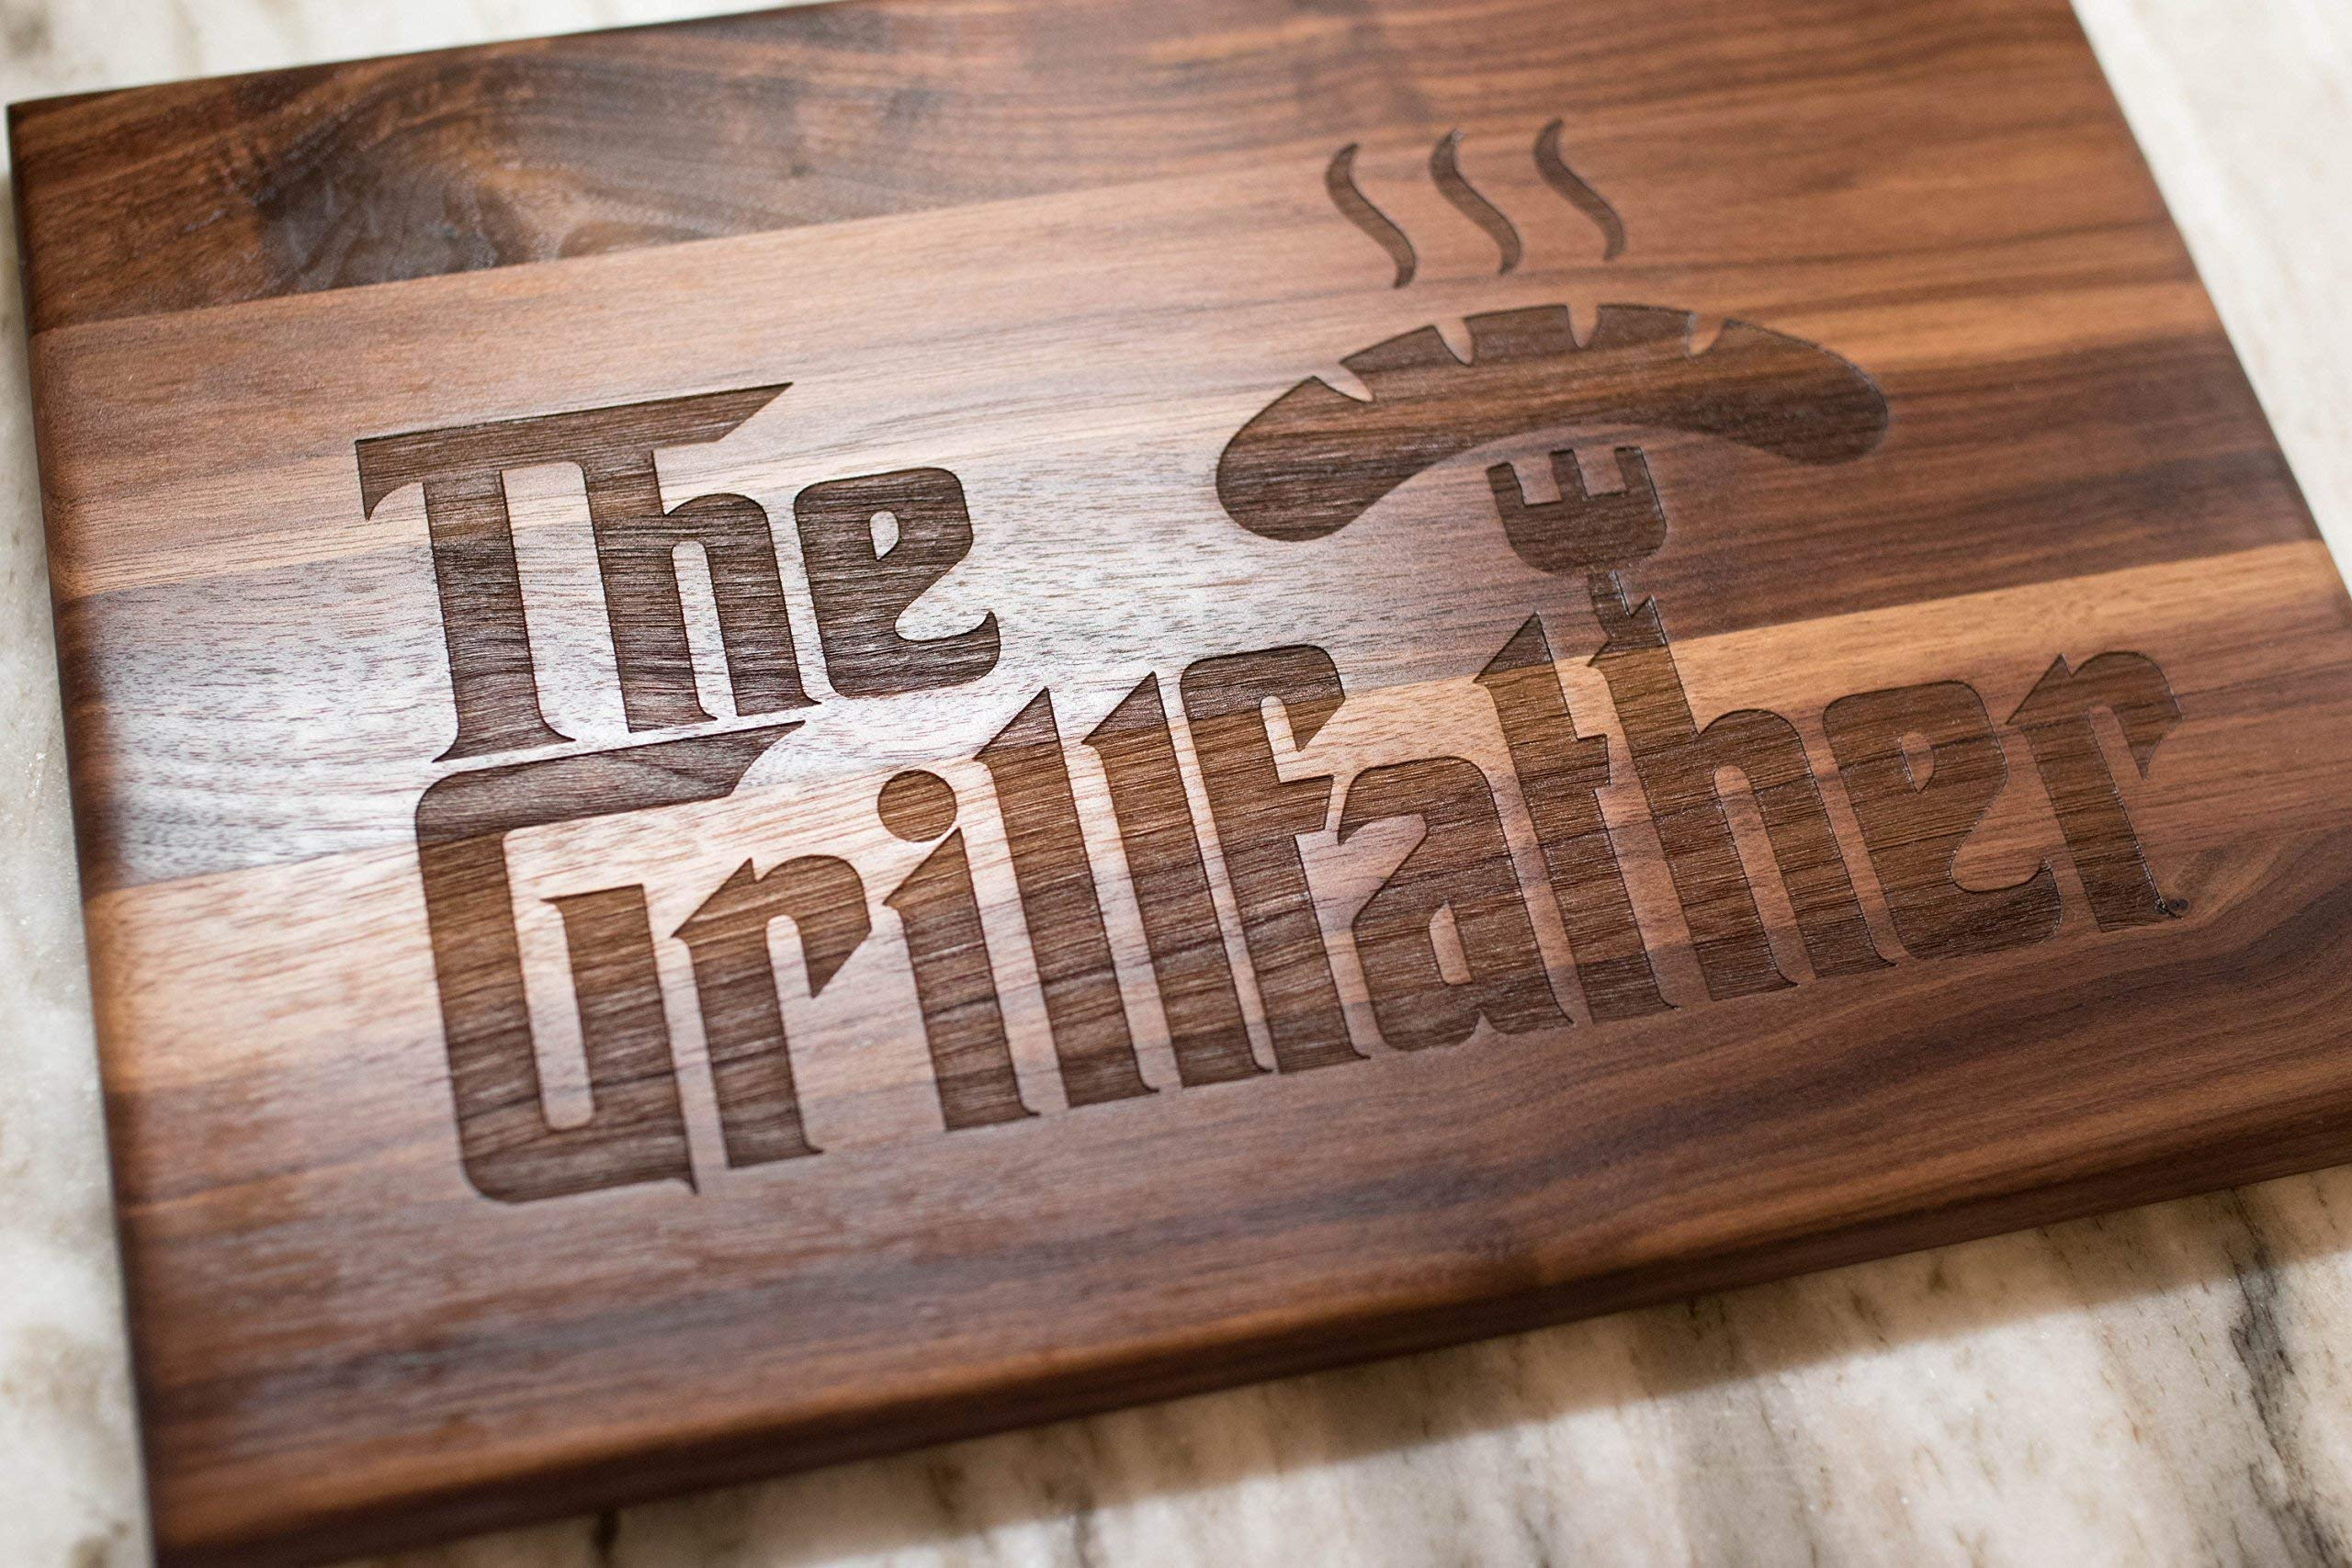 Fathers Day Gift for Dad - The Grillfather Cutting Board is a perfect gift for Dad, Stepfather gift, and grandfather gift.